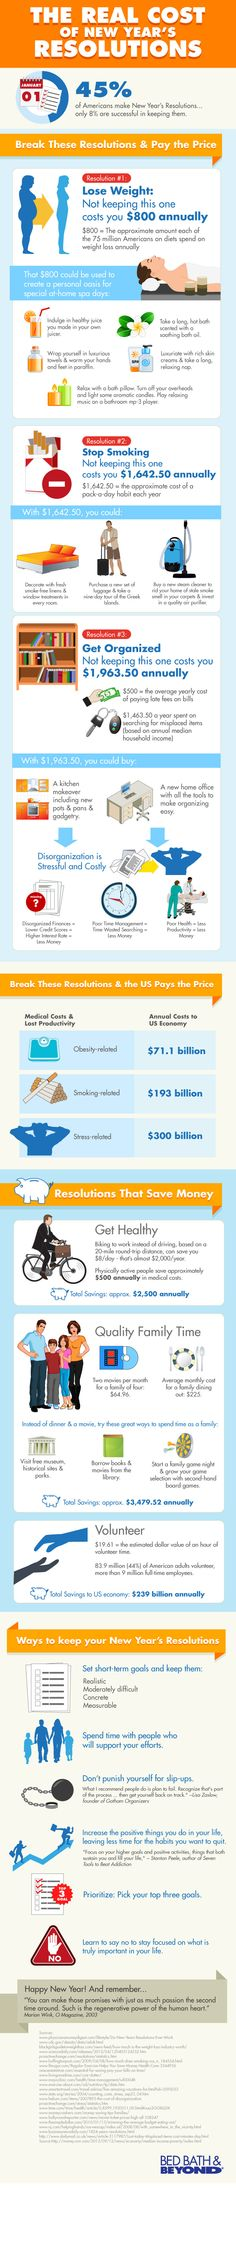 The Real Cost of New Year's Resolutions